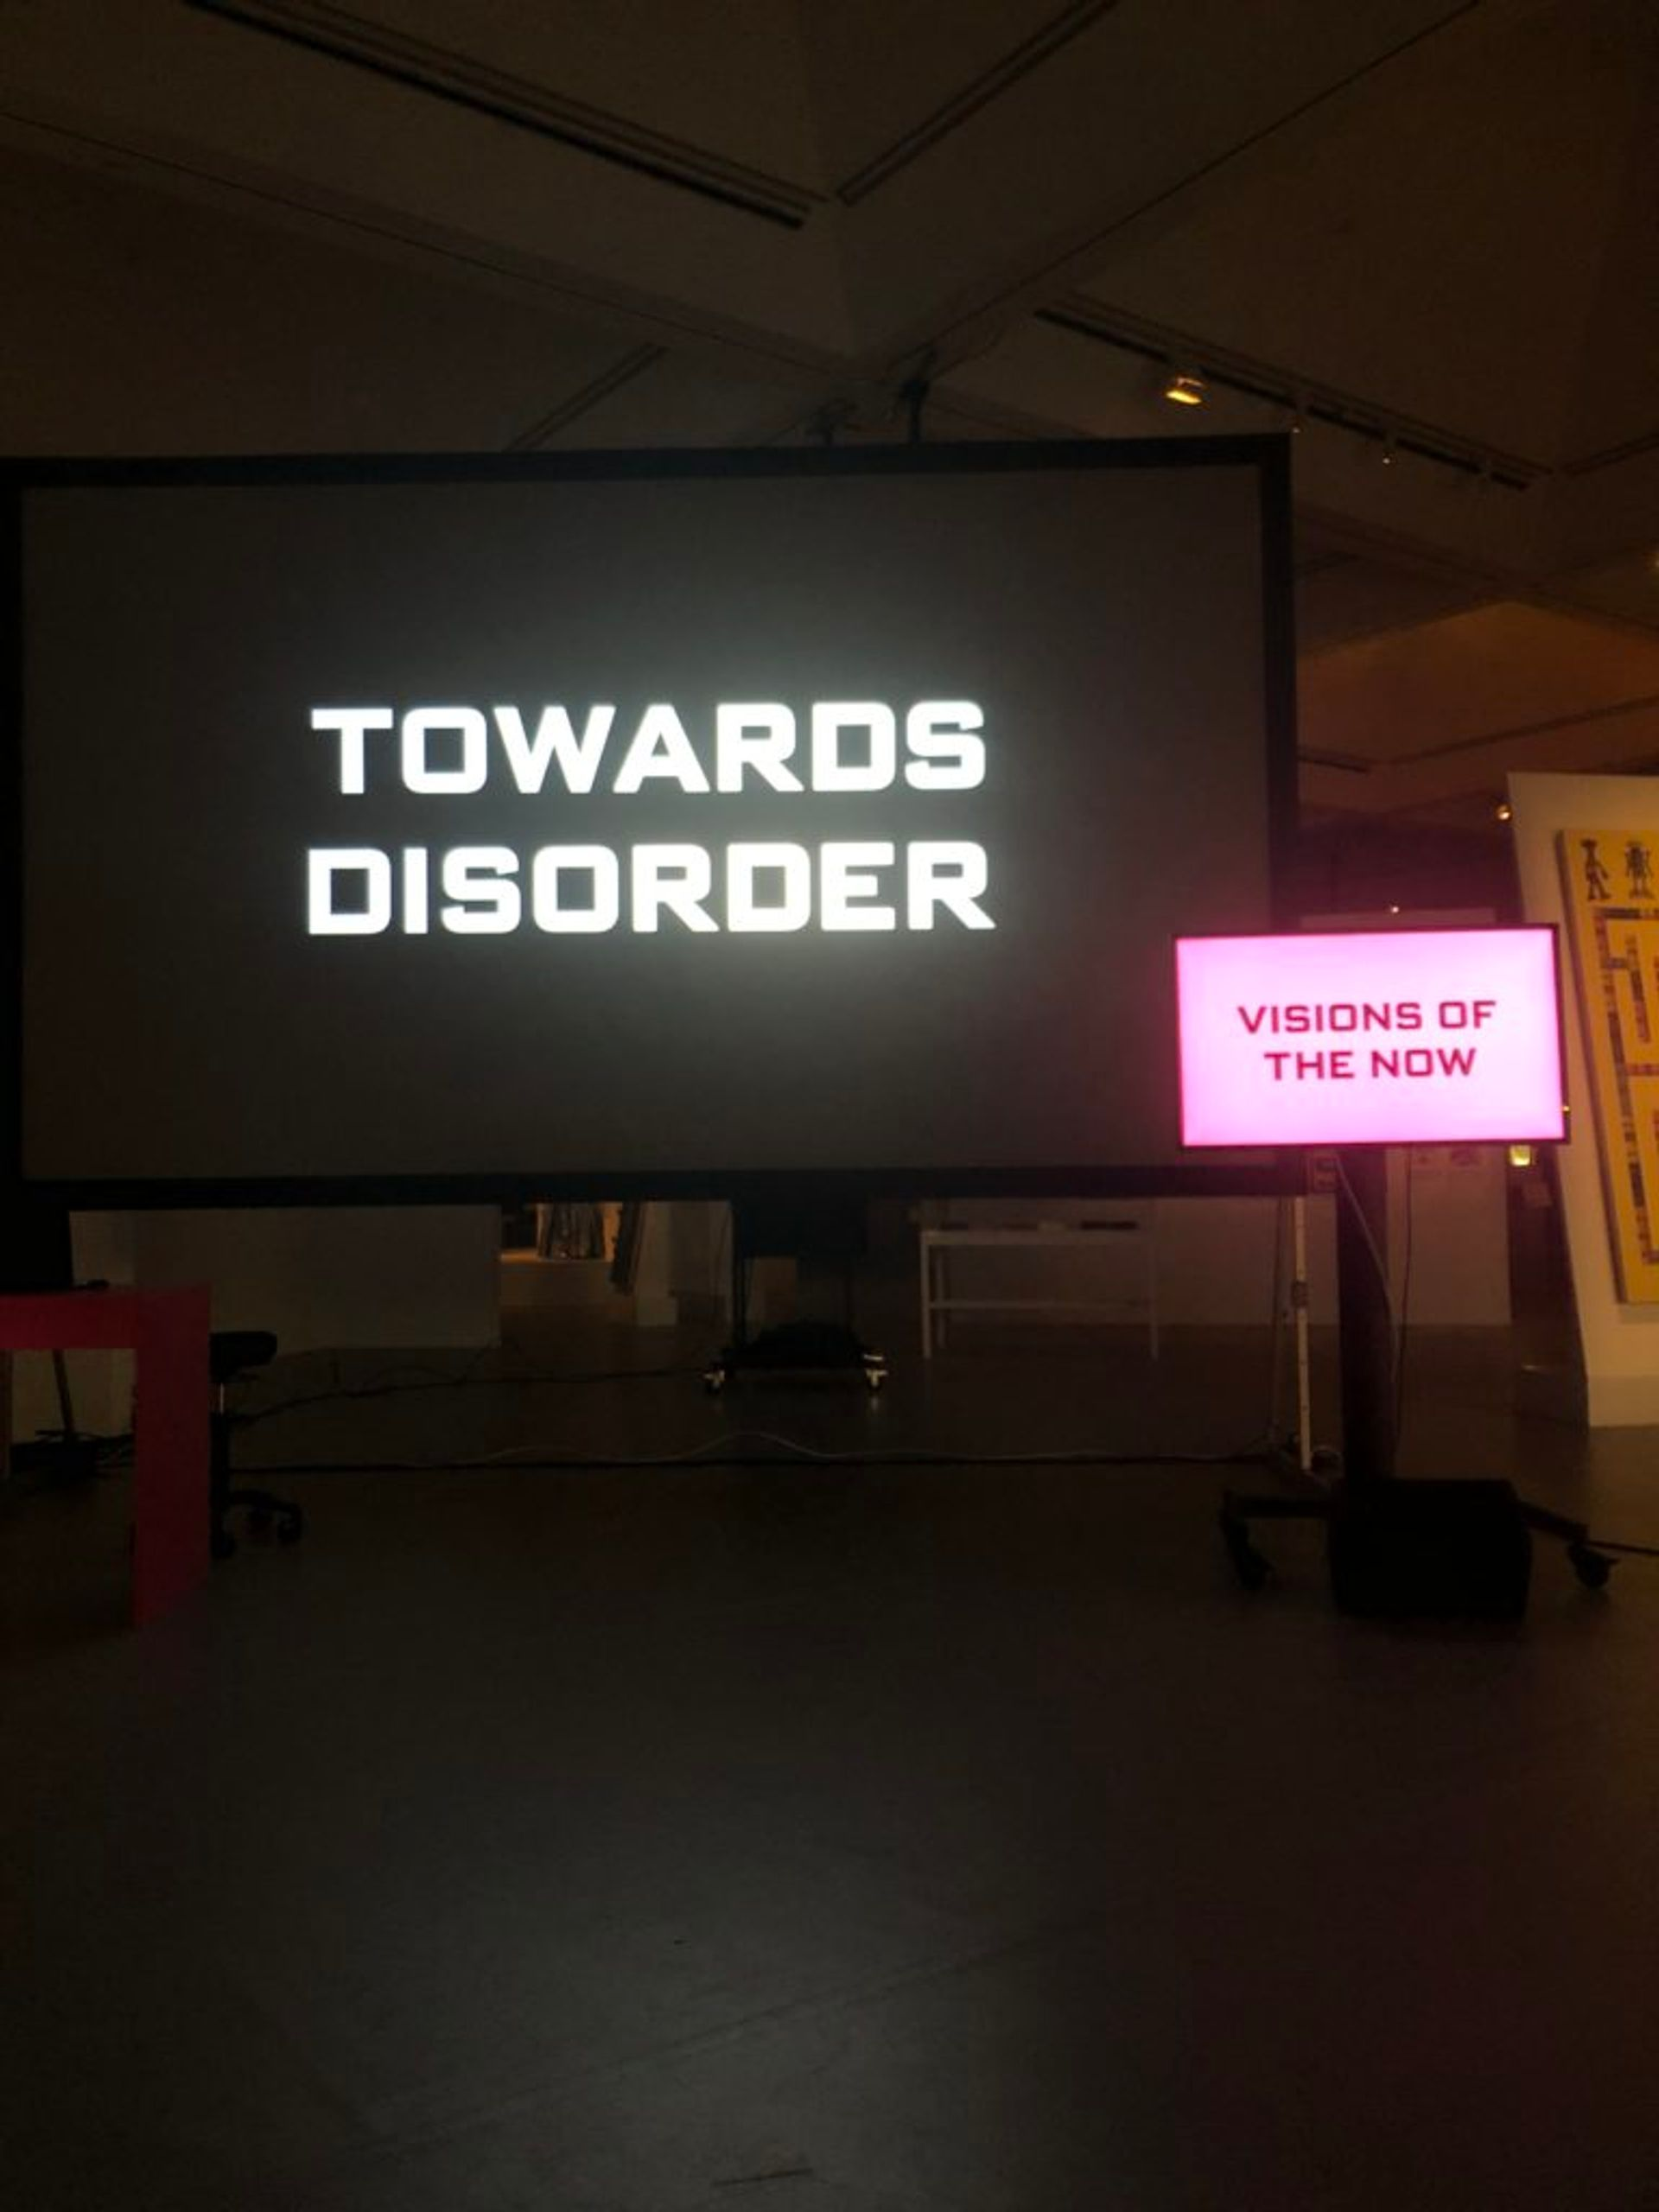 A performance art lecture. There are two screens, captions read 'Towards disorder' and 'Visions of the now'.